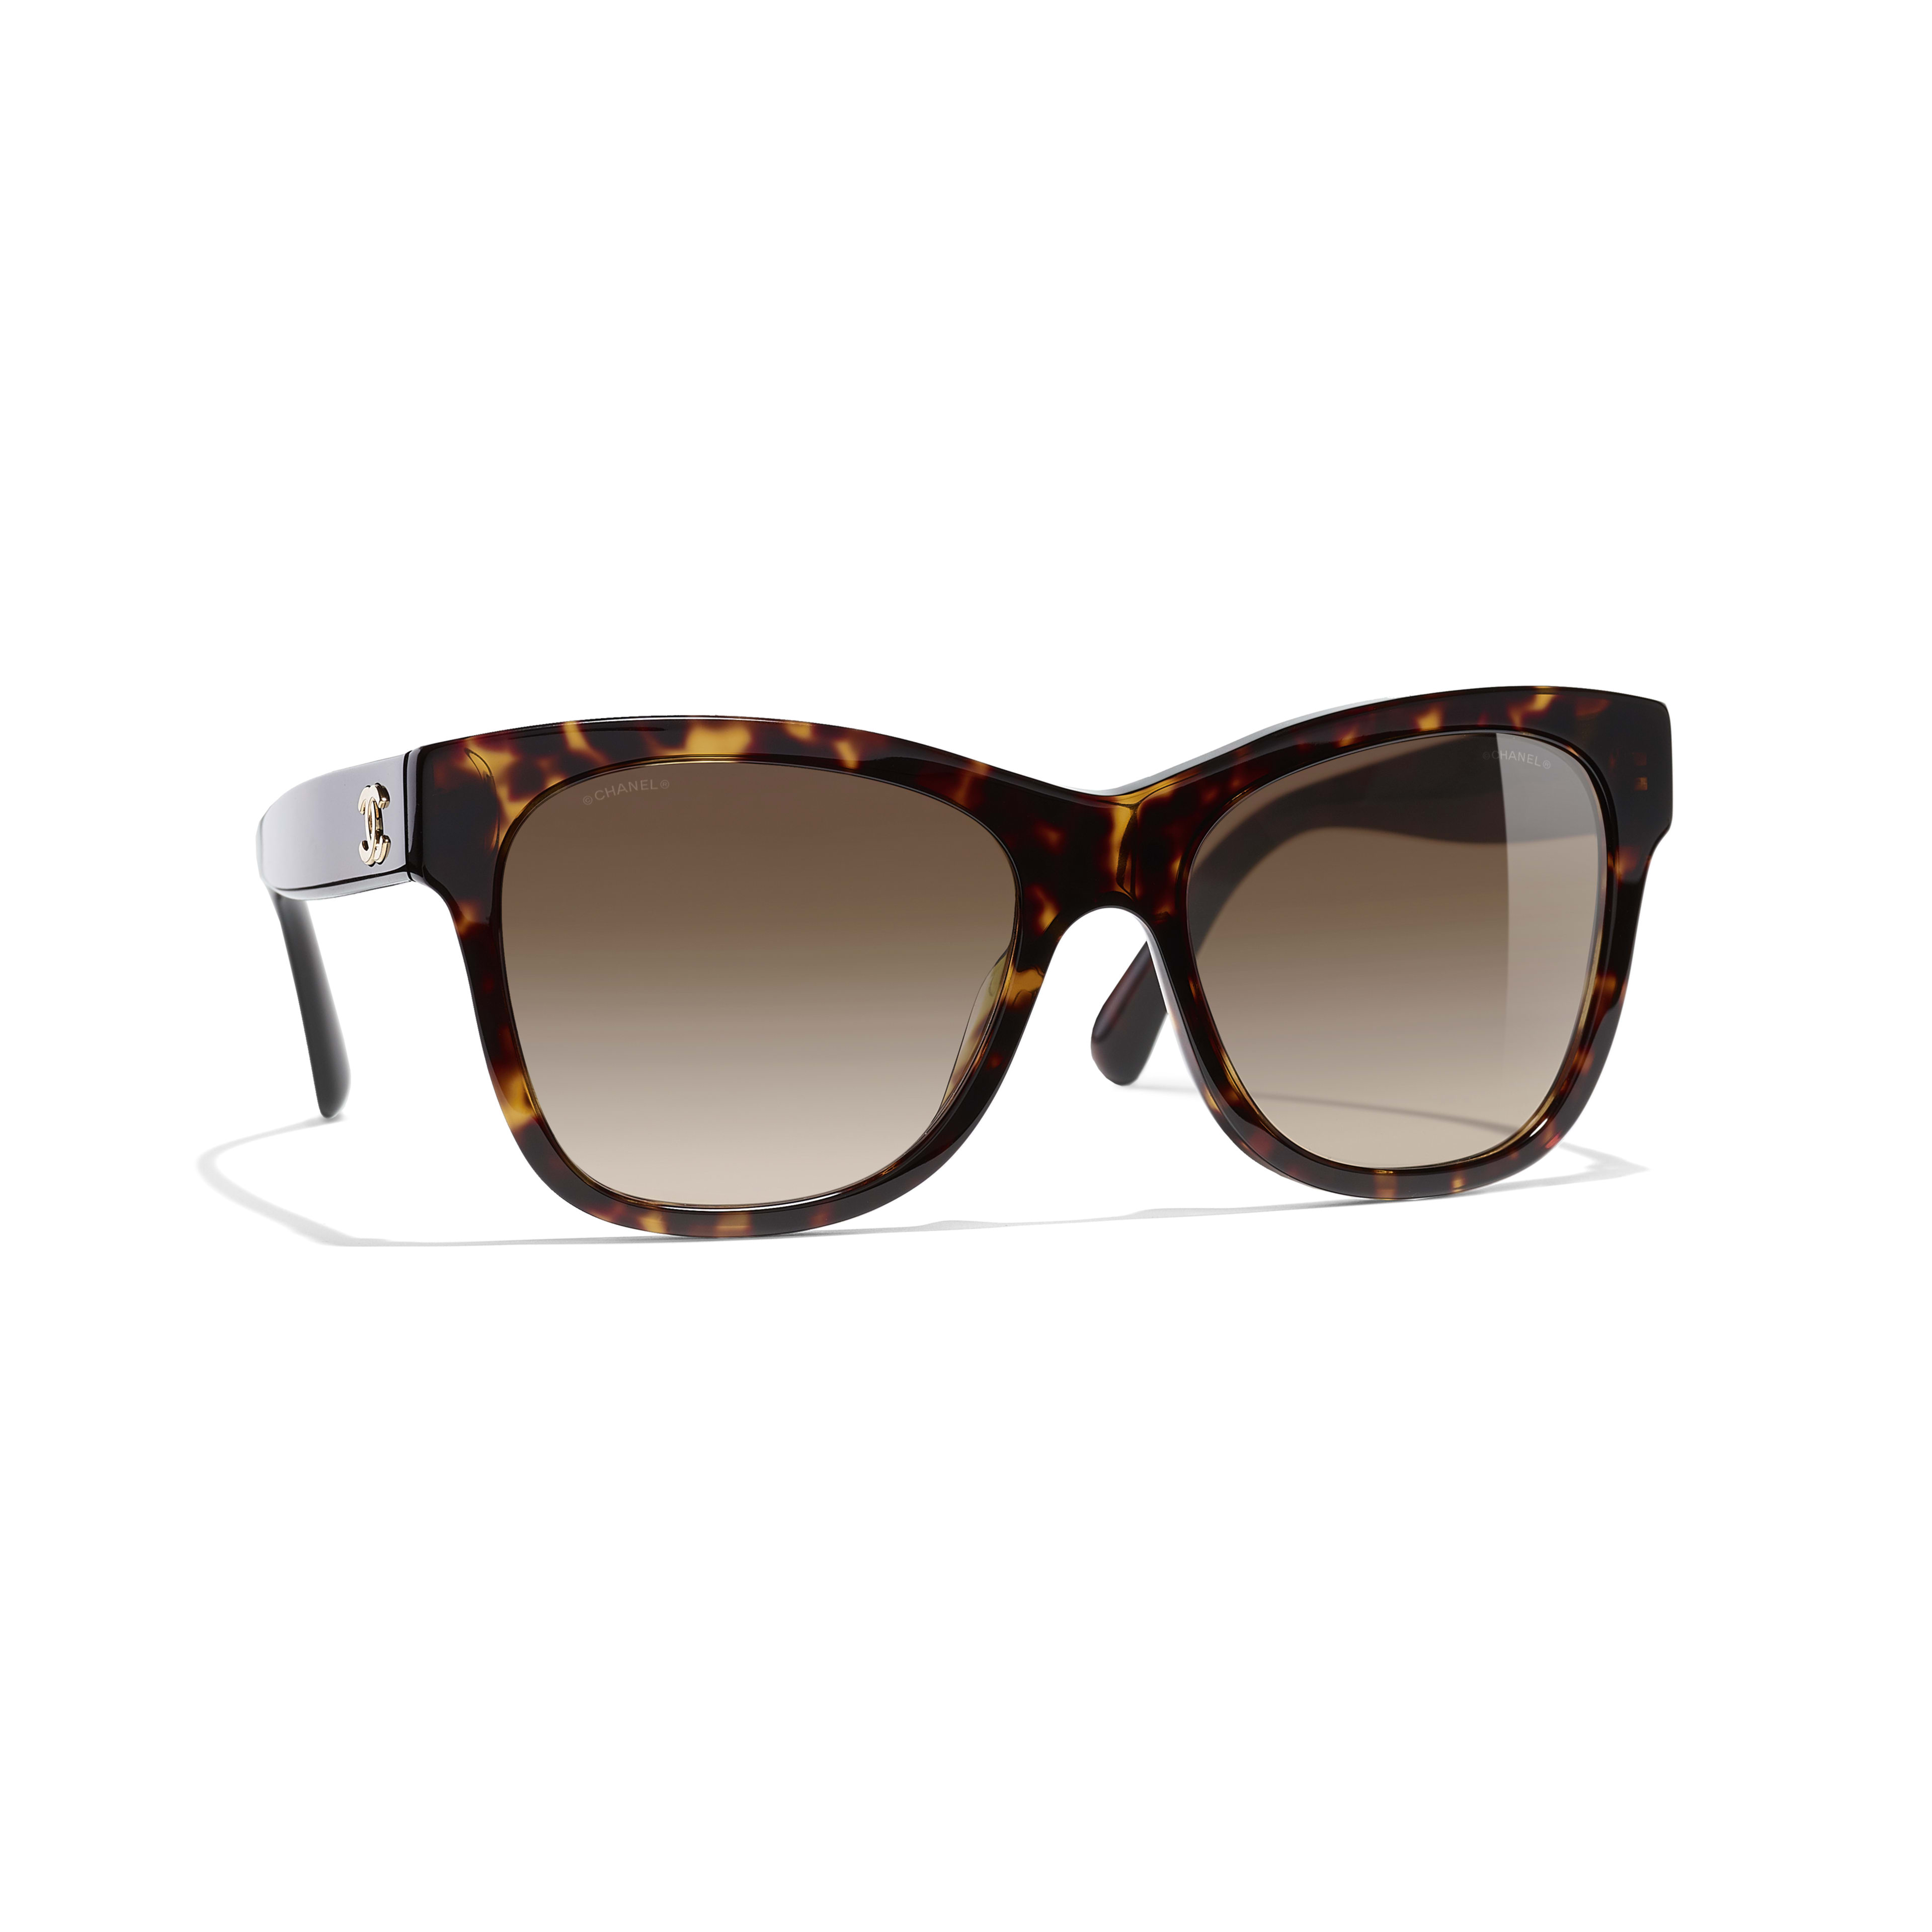 Square Sunglasses - Dark Tortoise - Acetate - CHANEL - Default view - see standard sized version